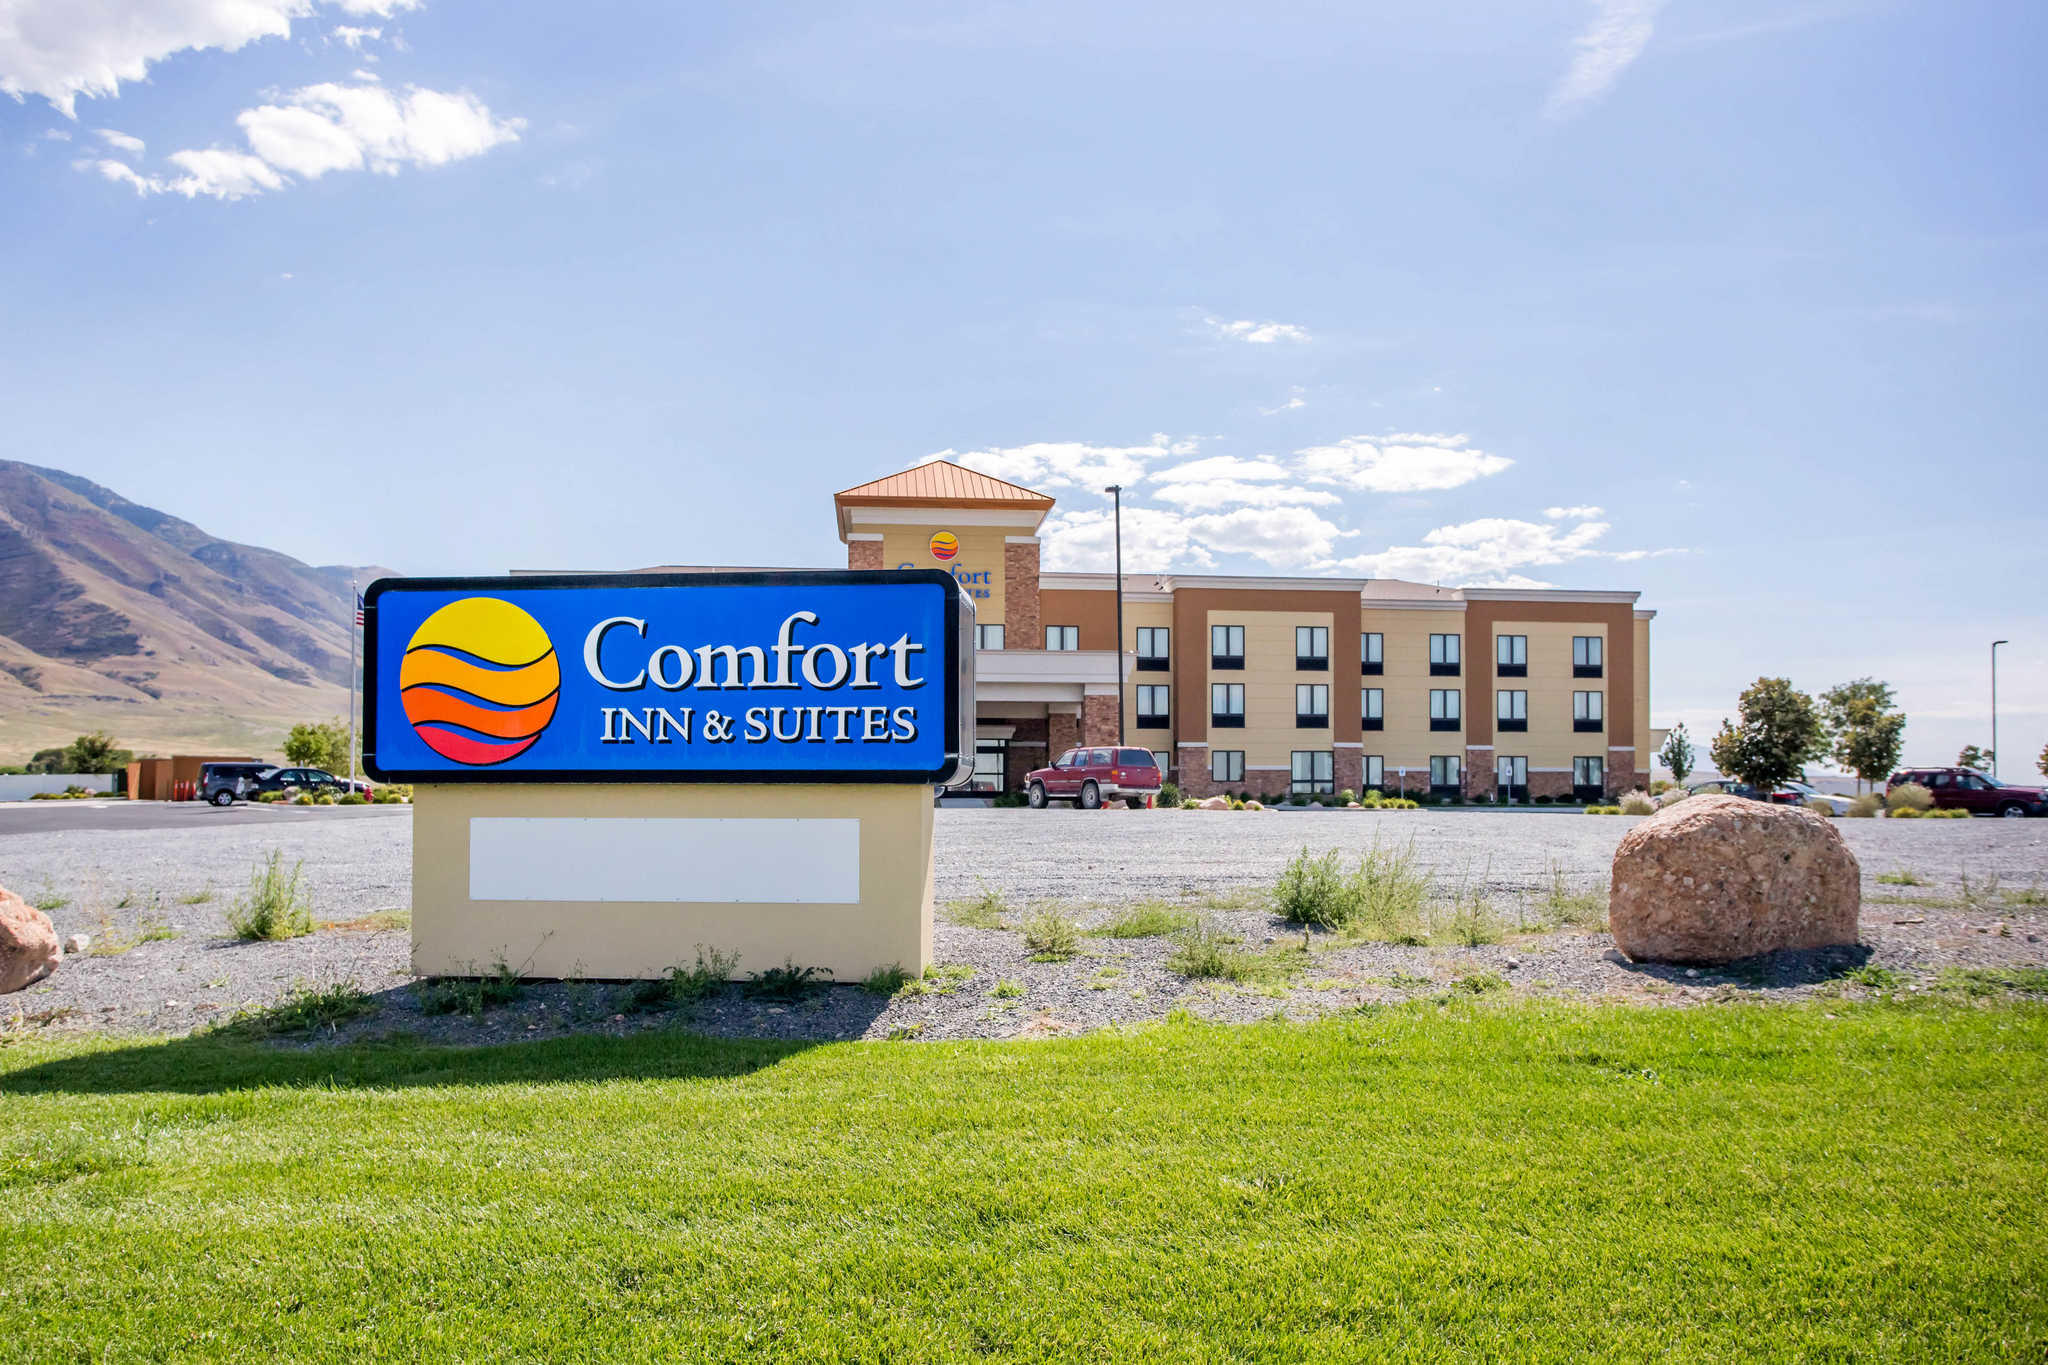 Comfort inn suites coupons tooele ut near me 8coupons for Hotels 8 near me